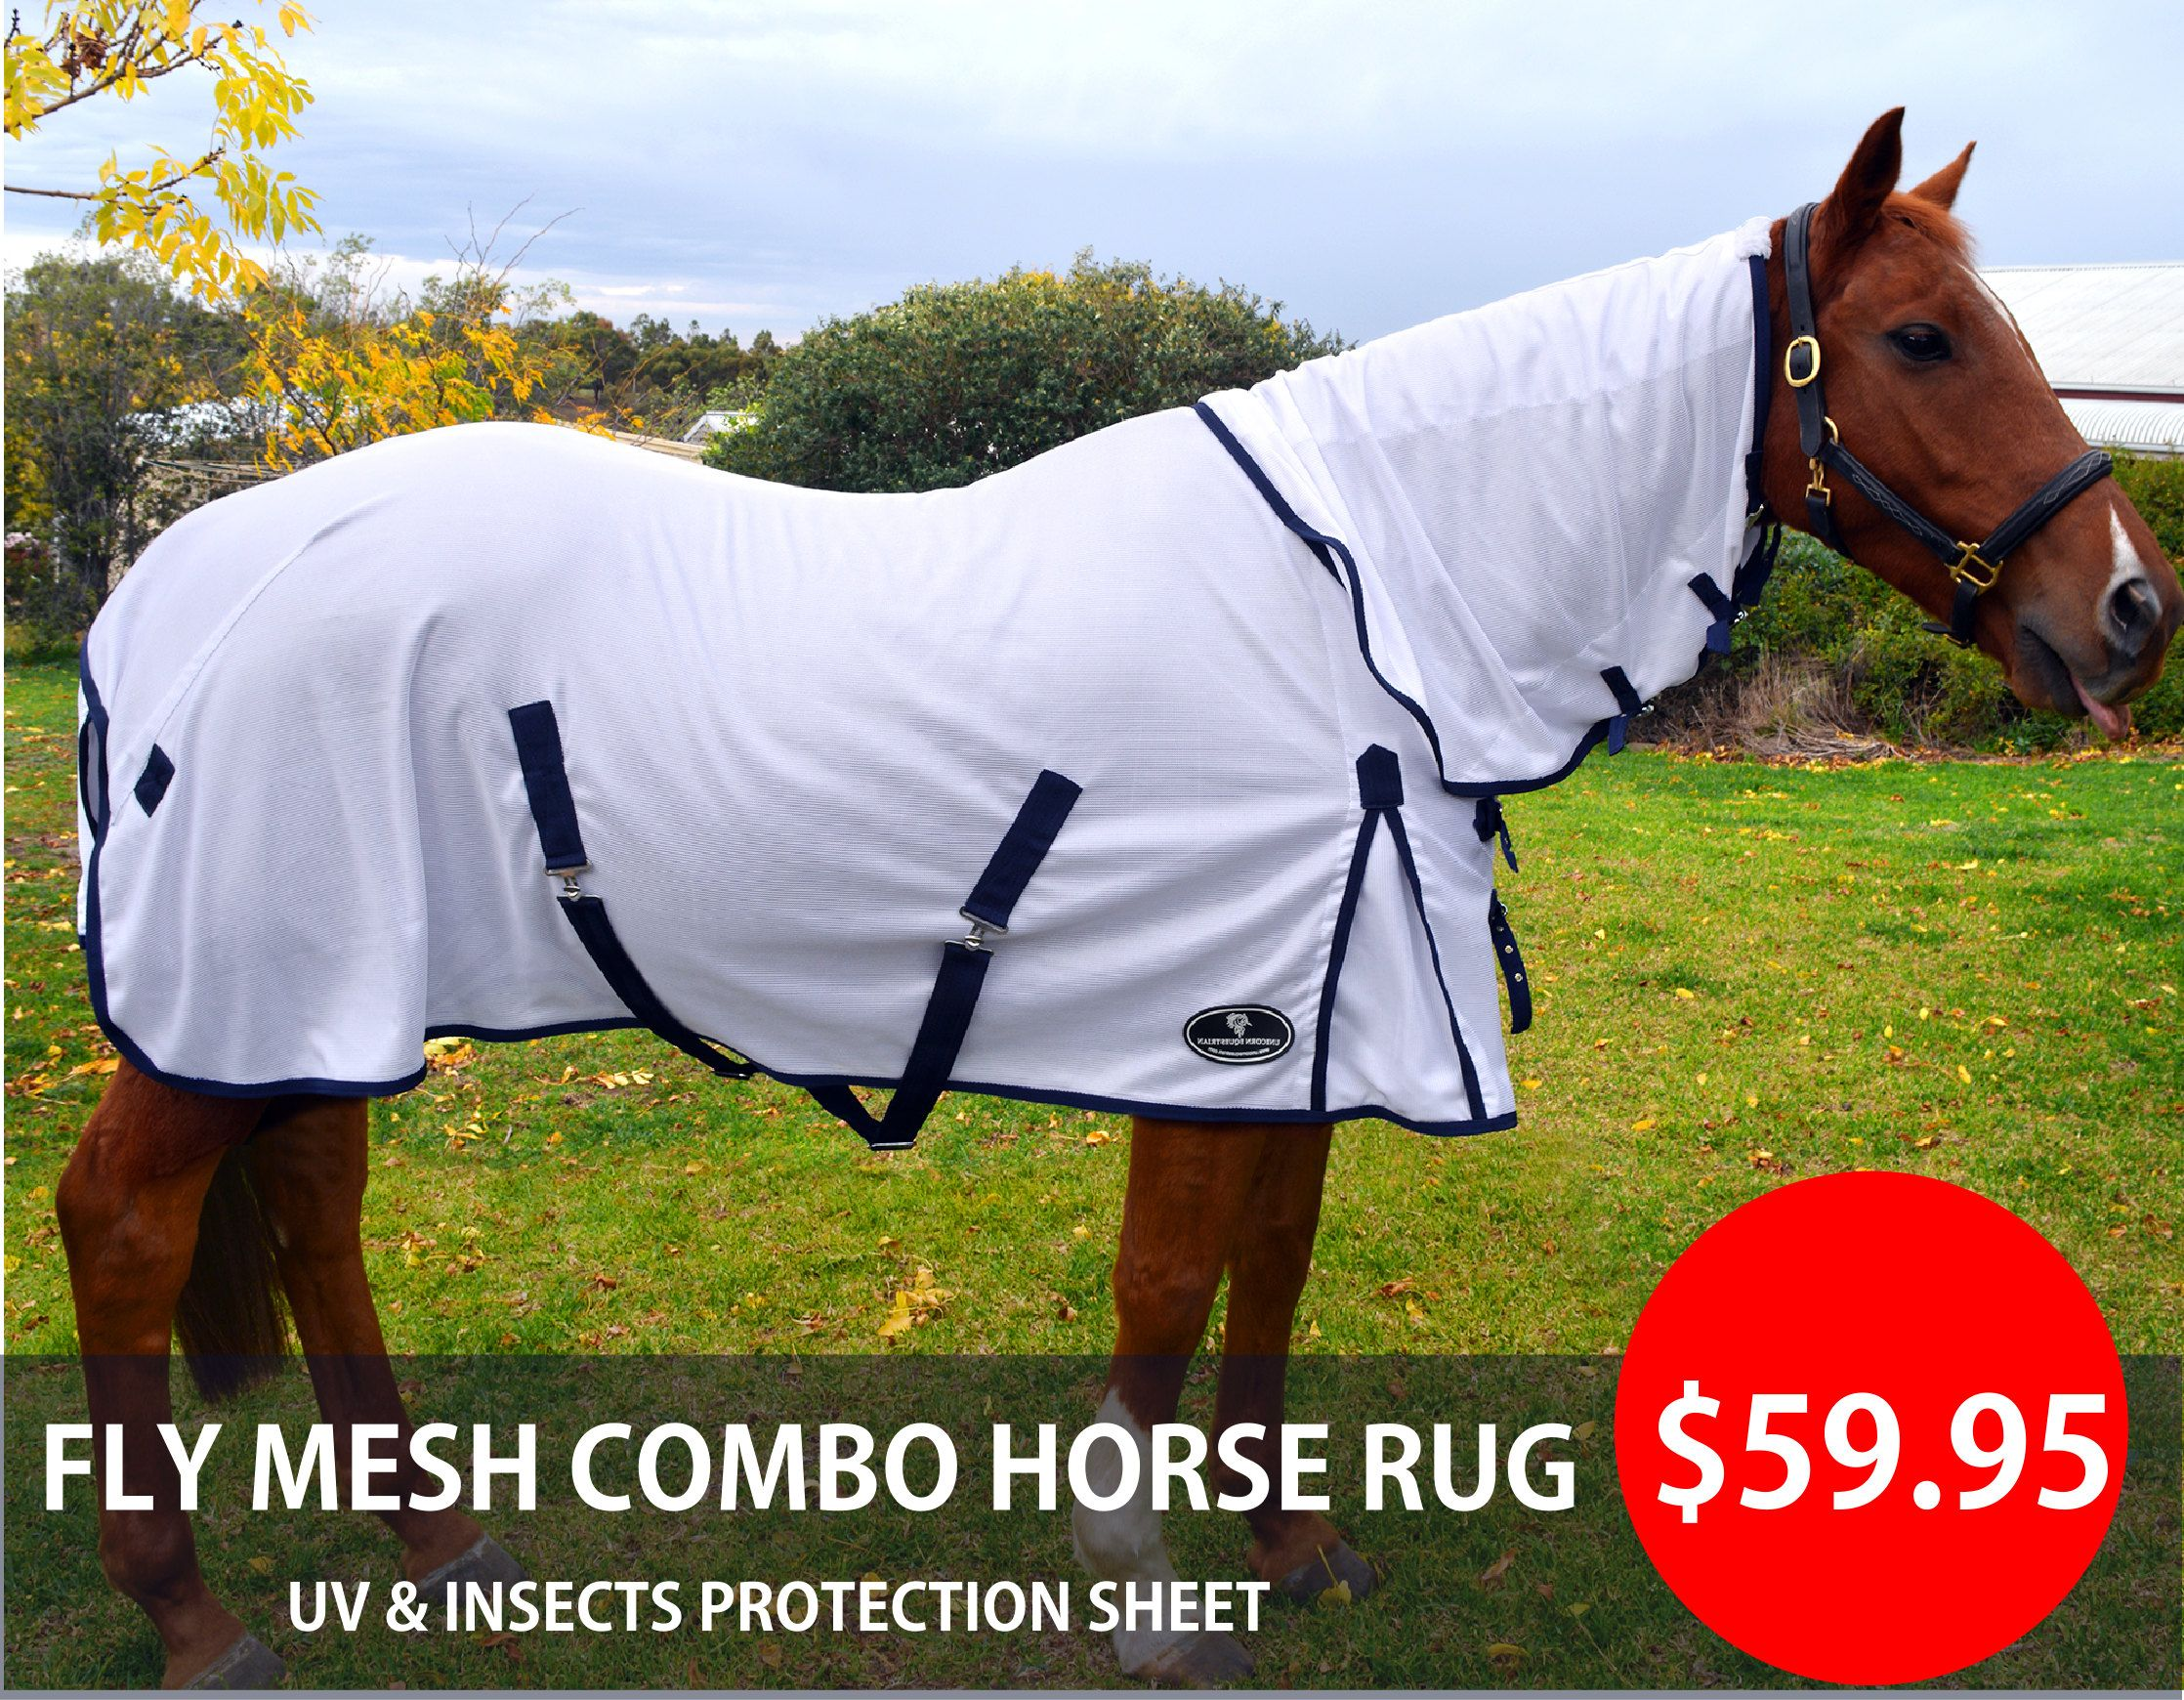 Fly Mesh Combo Horse Rug 300gsm Durable Sheet Sizes 4 9 69 Uv N Insects Protection